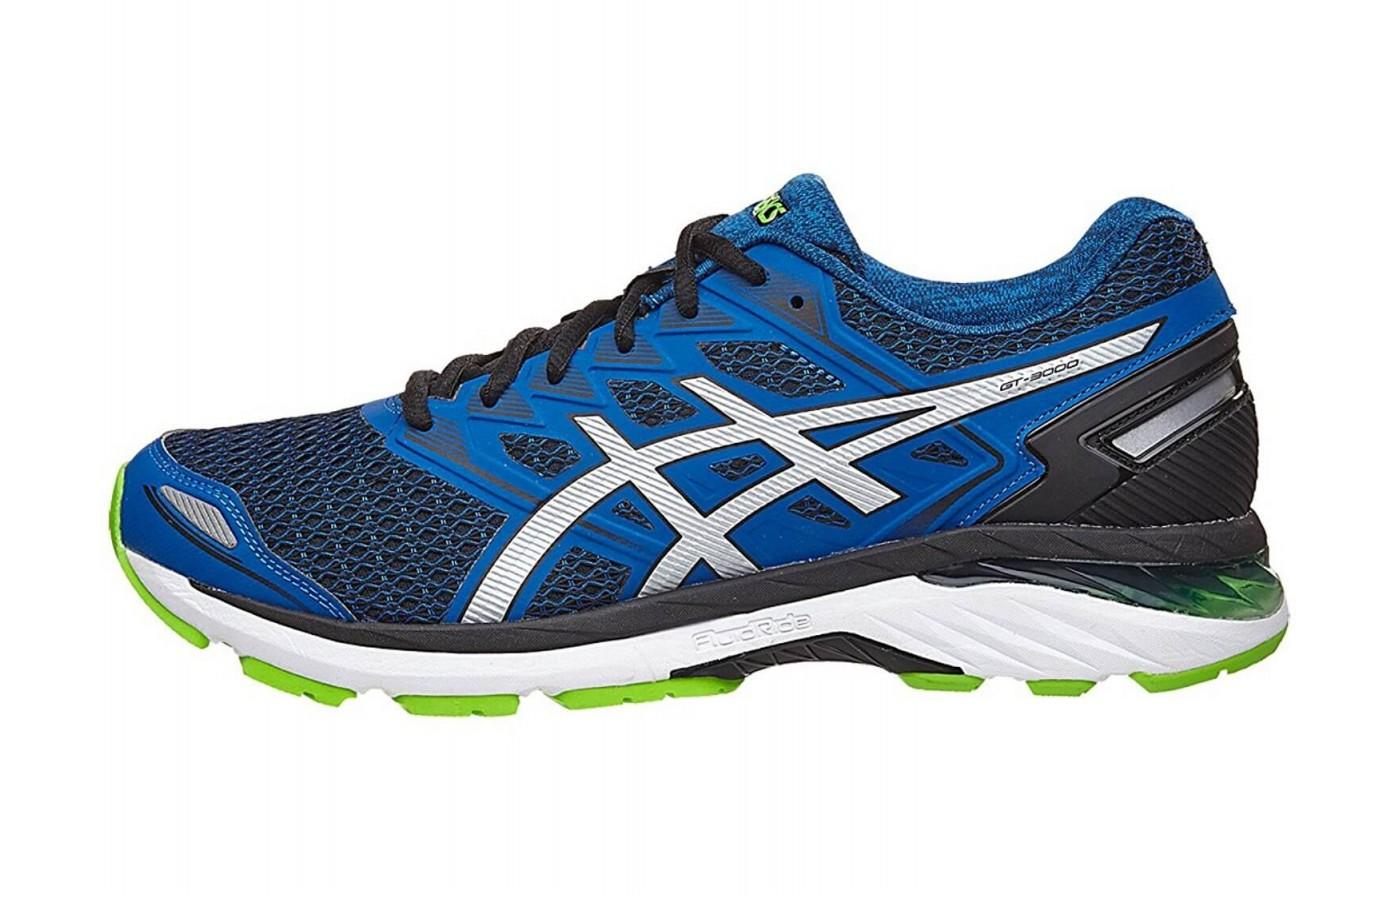 The Asics GT 3000 5 has a heel counter that both supports the foot and improves the fit